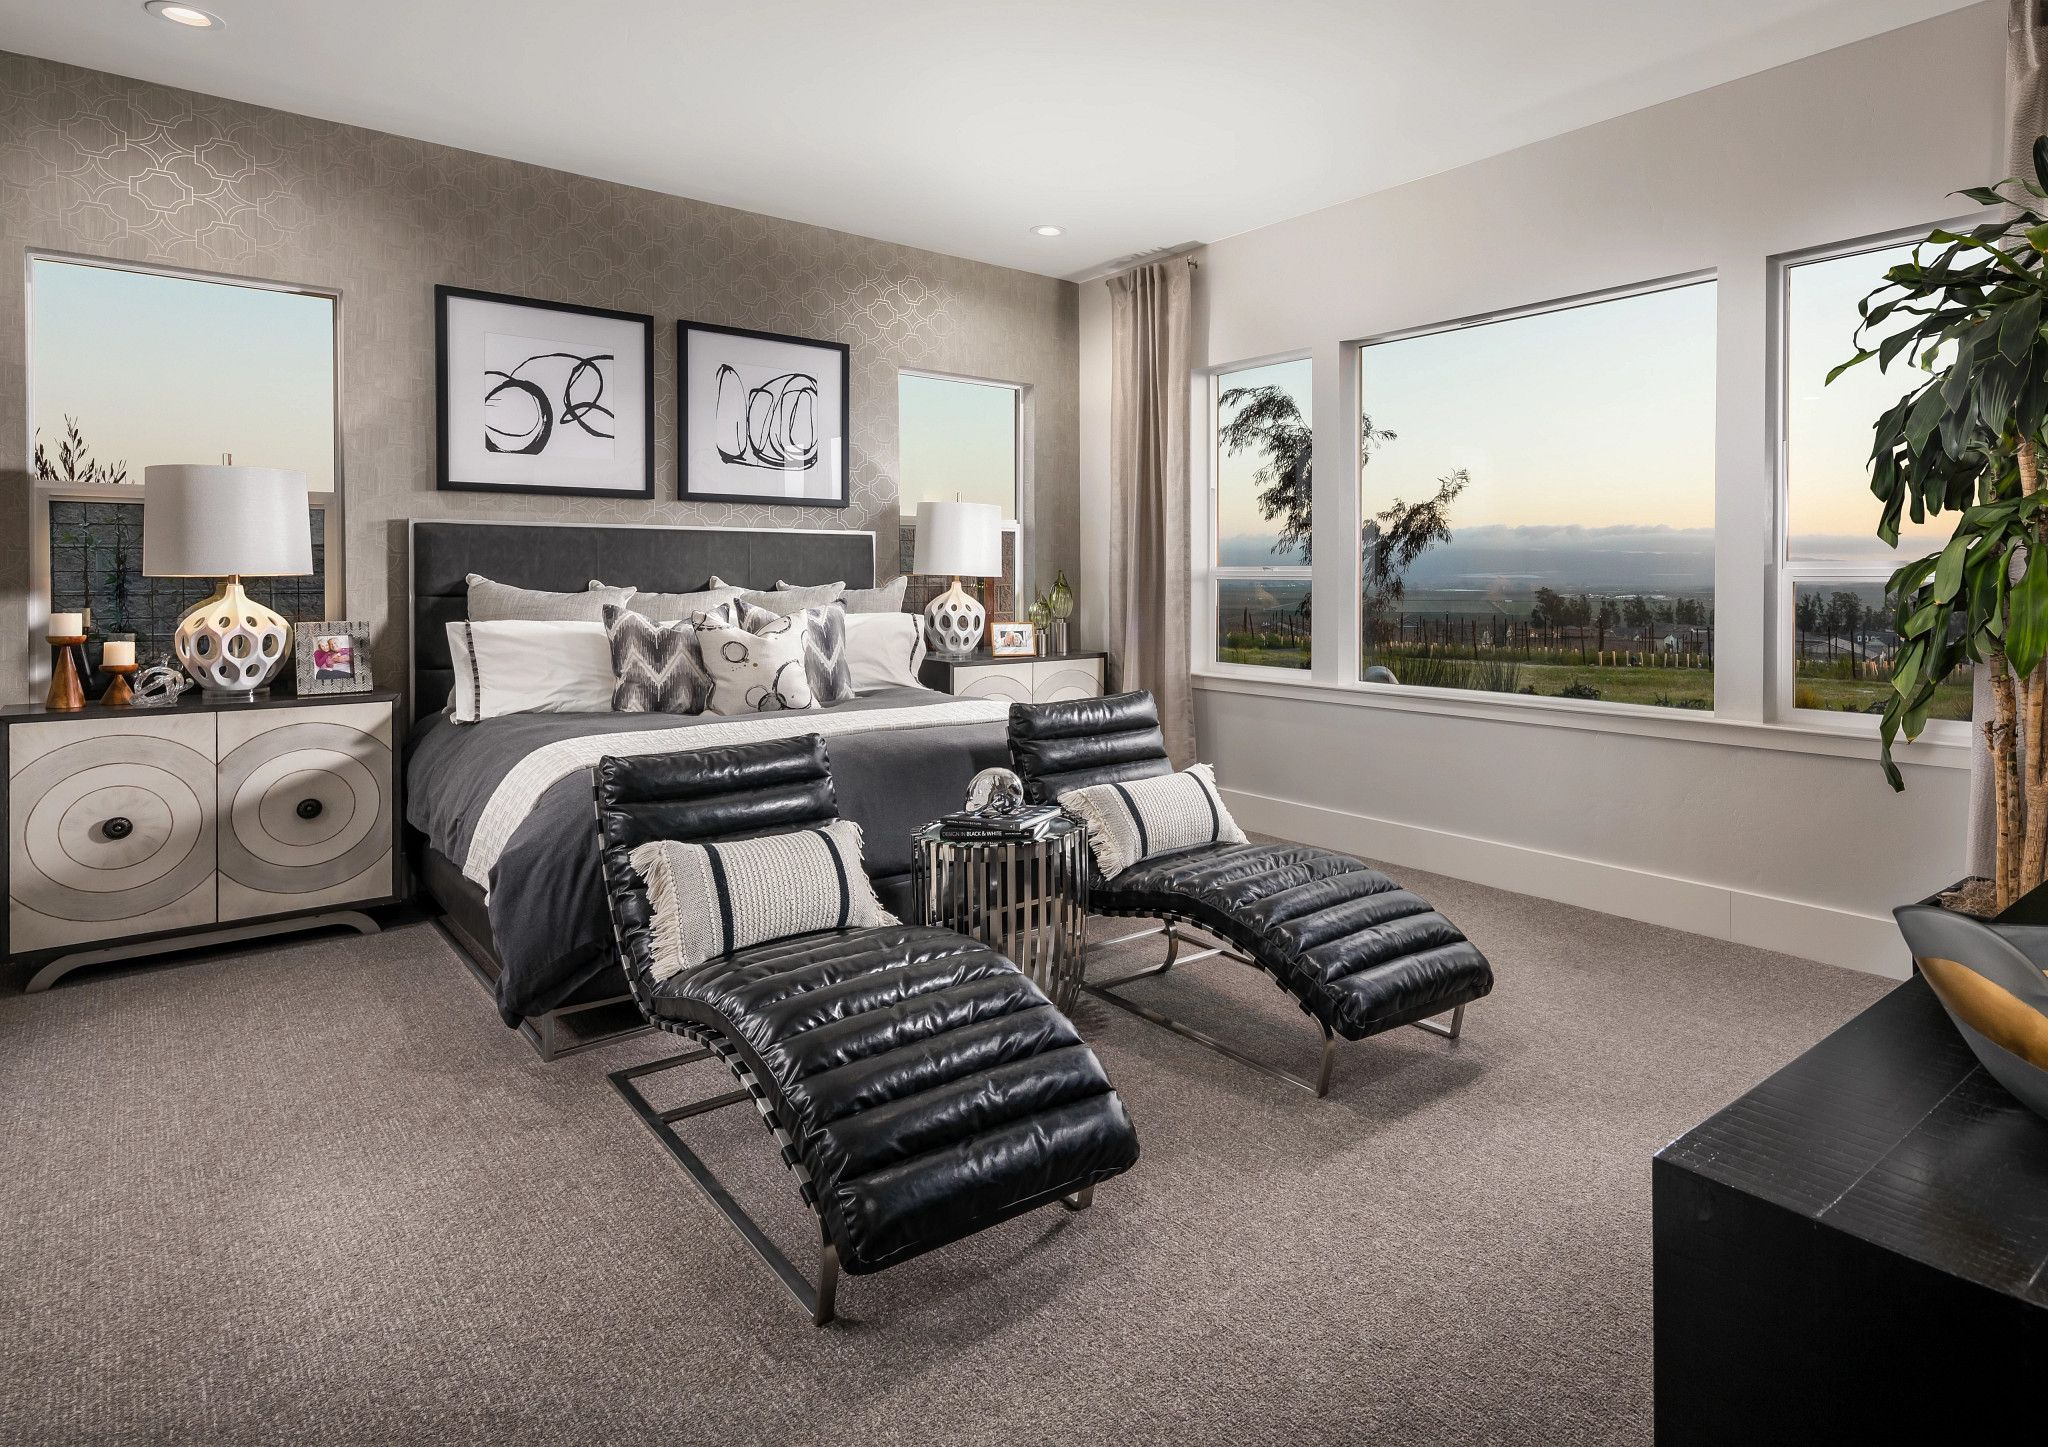 Bedroom featured in the Carmel By Shea Homes - Trilogy in San Luis Obispo, CA